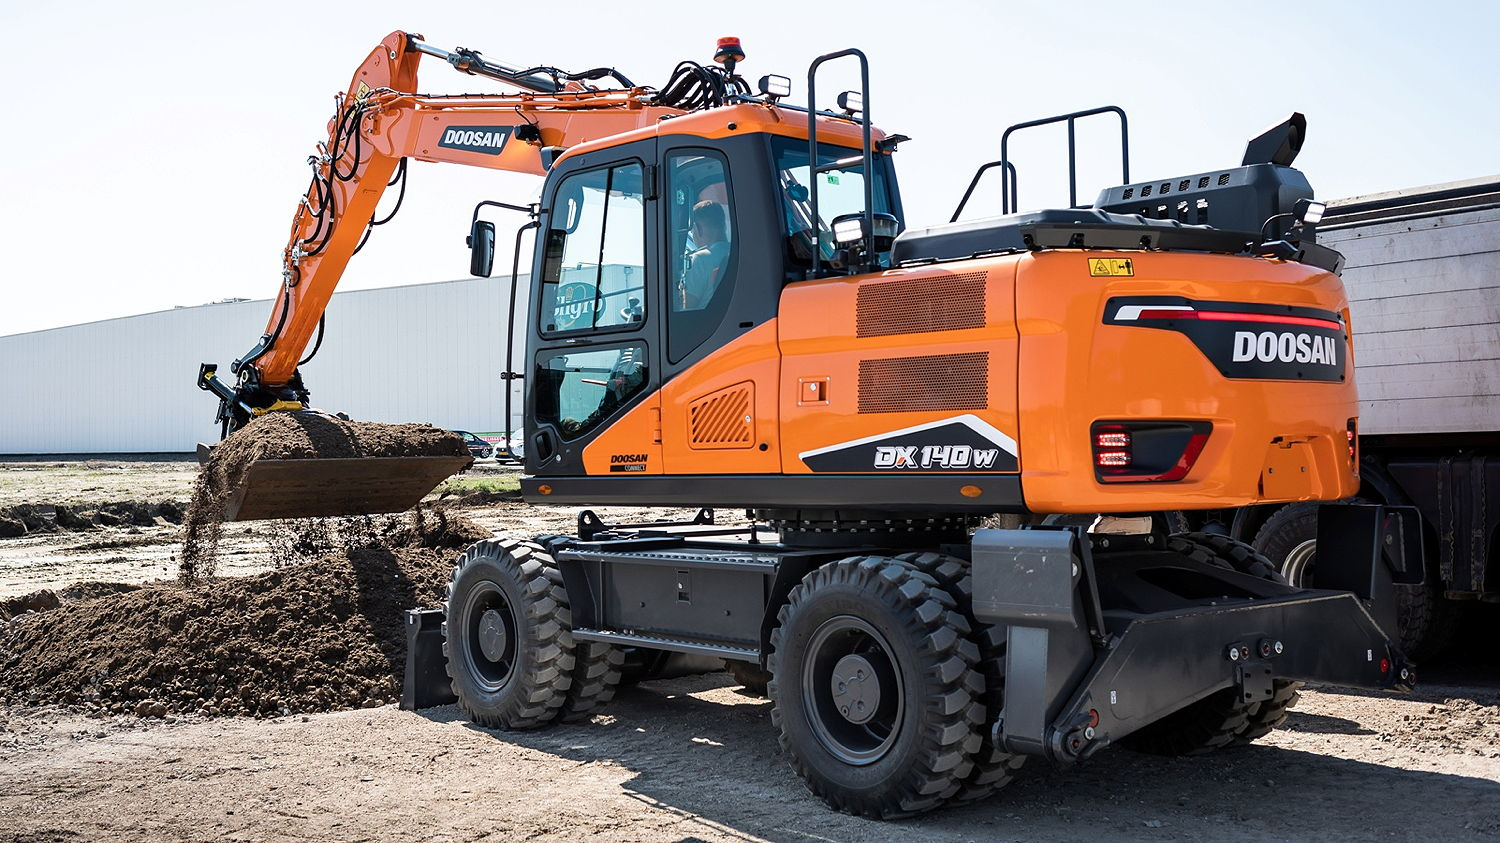 Doosan's 7-Series wheeled excavators feature Stage V engines and a range of new features